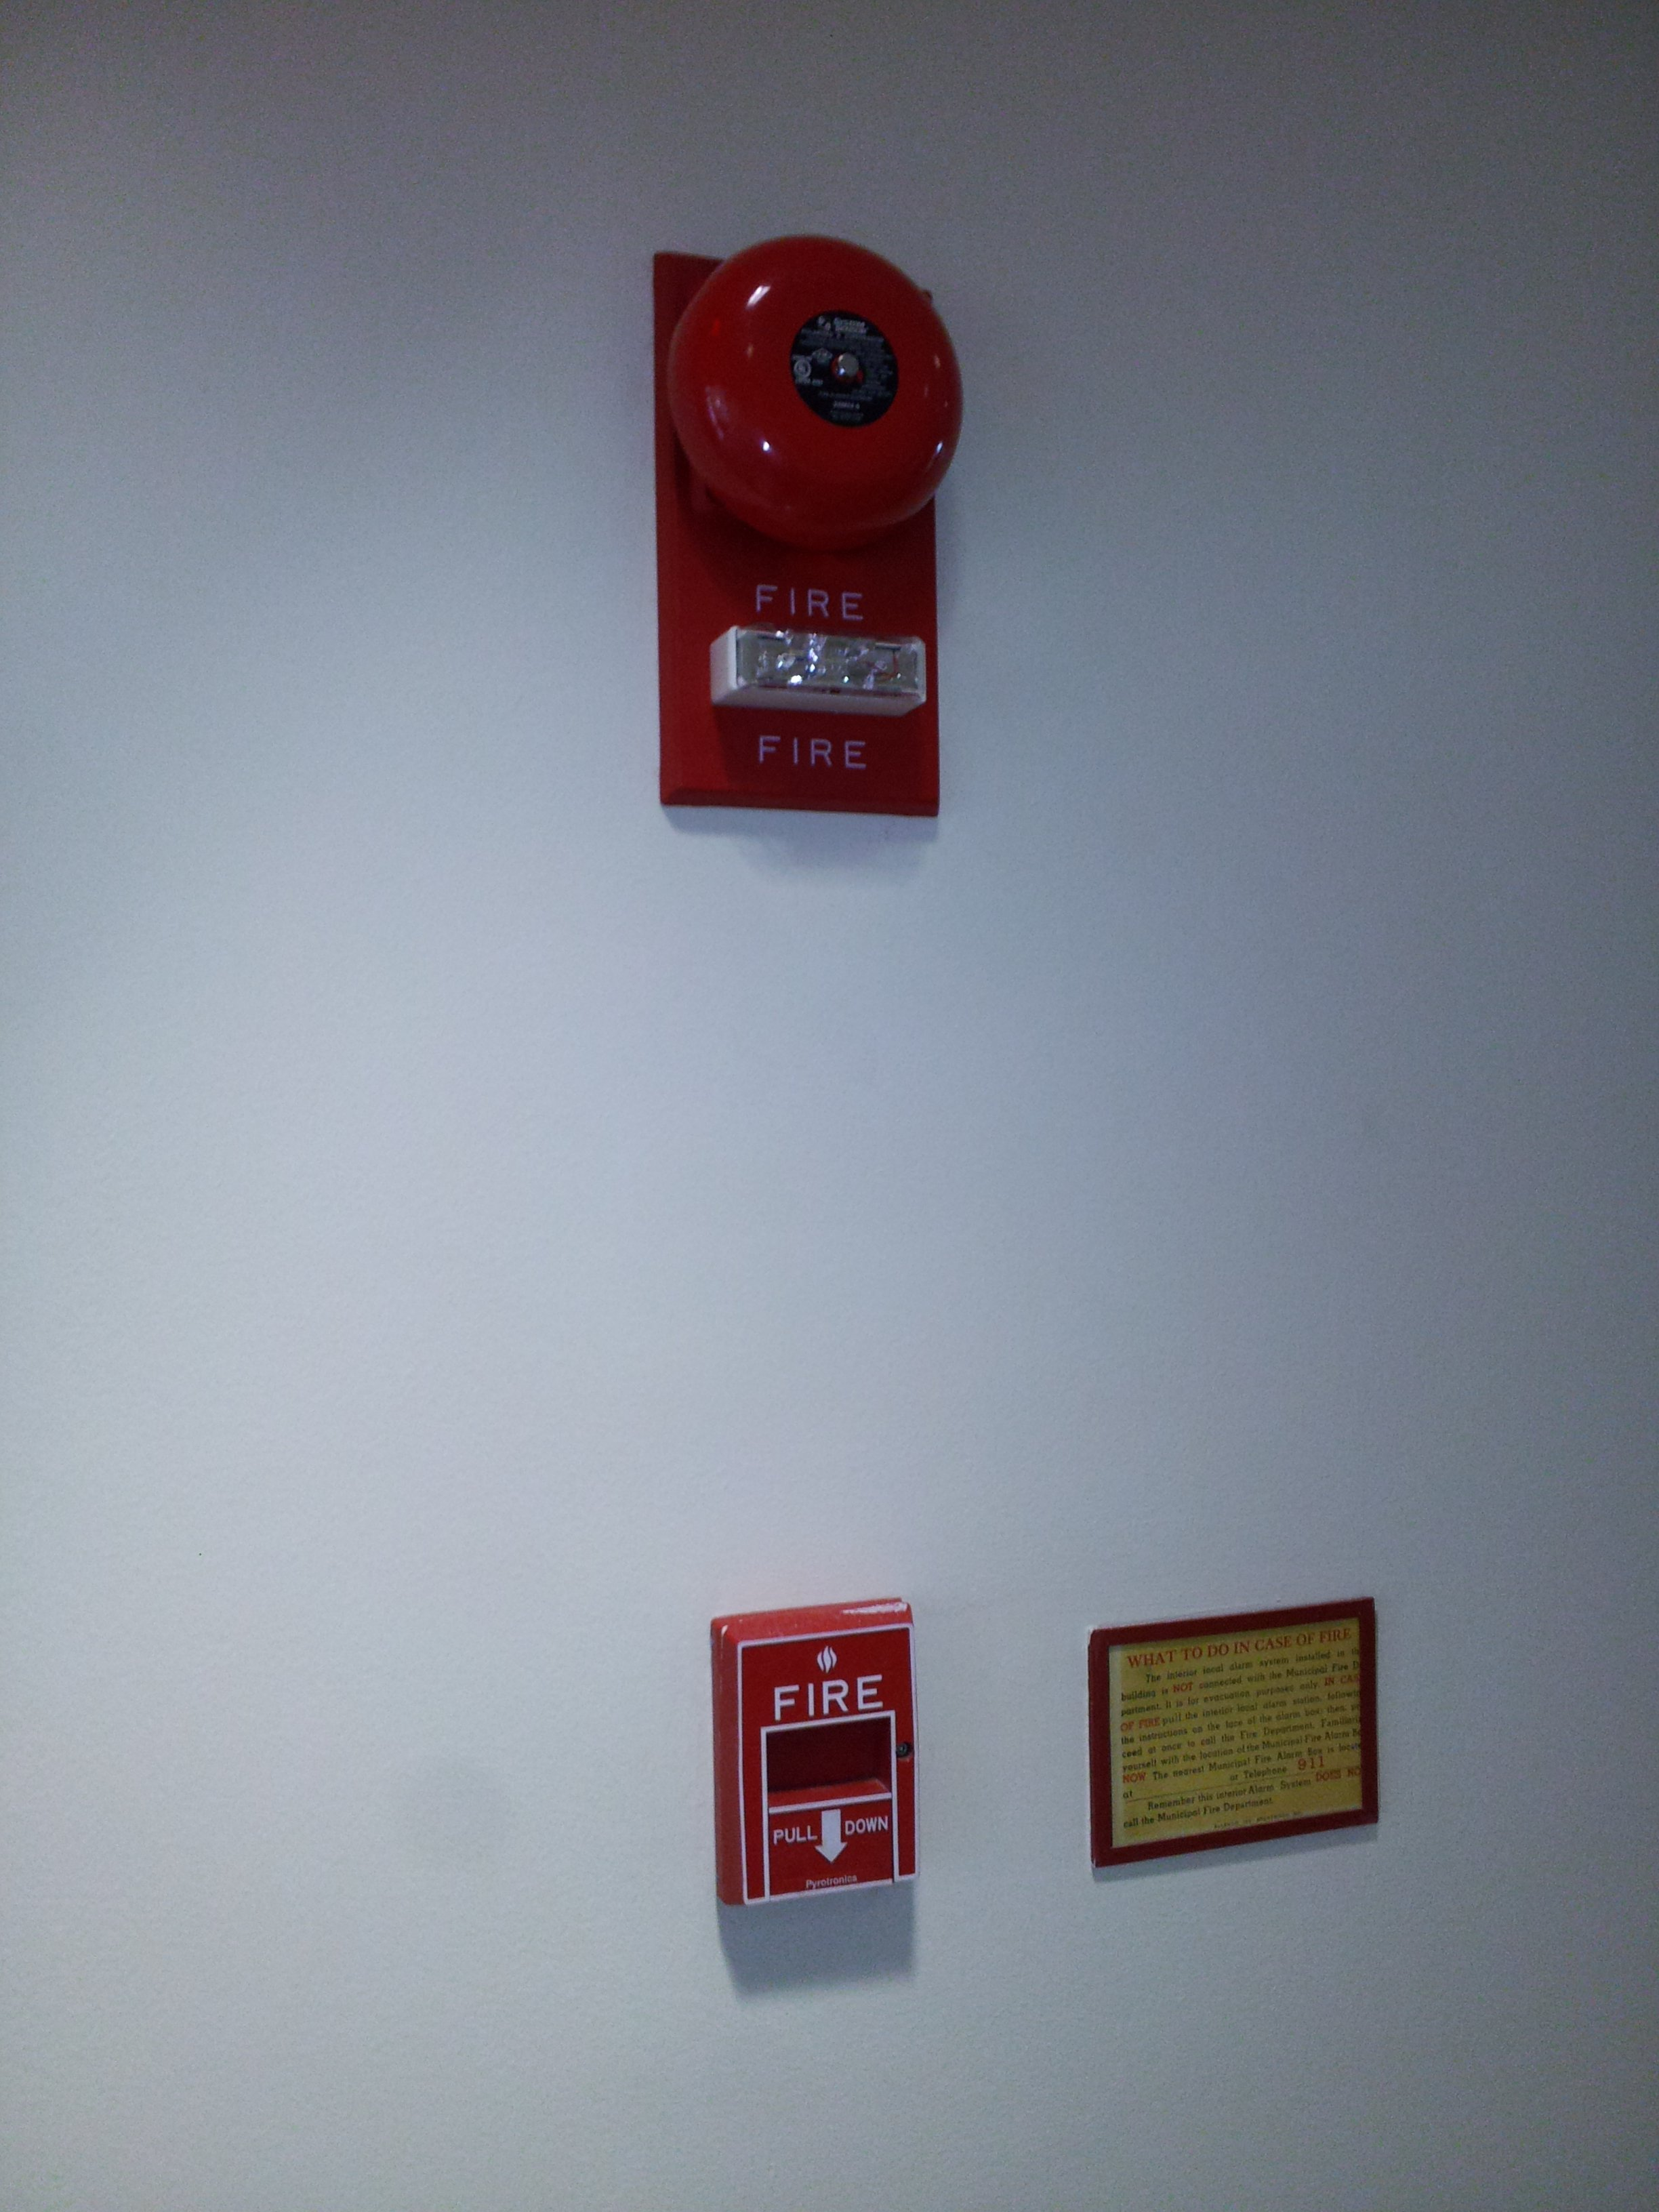 New Fire Alarms At Work Again likewise Responding To The Authentic Fire Alarm as well Operation Sea Arrrgh additionally Texasfiredesign together with Nfpa Fire Equipment Signs. on fire alarm pull station